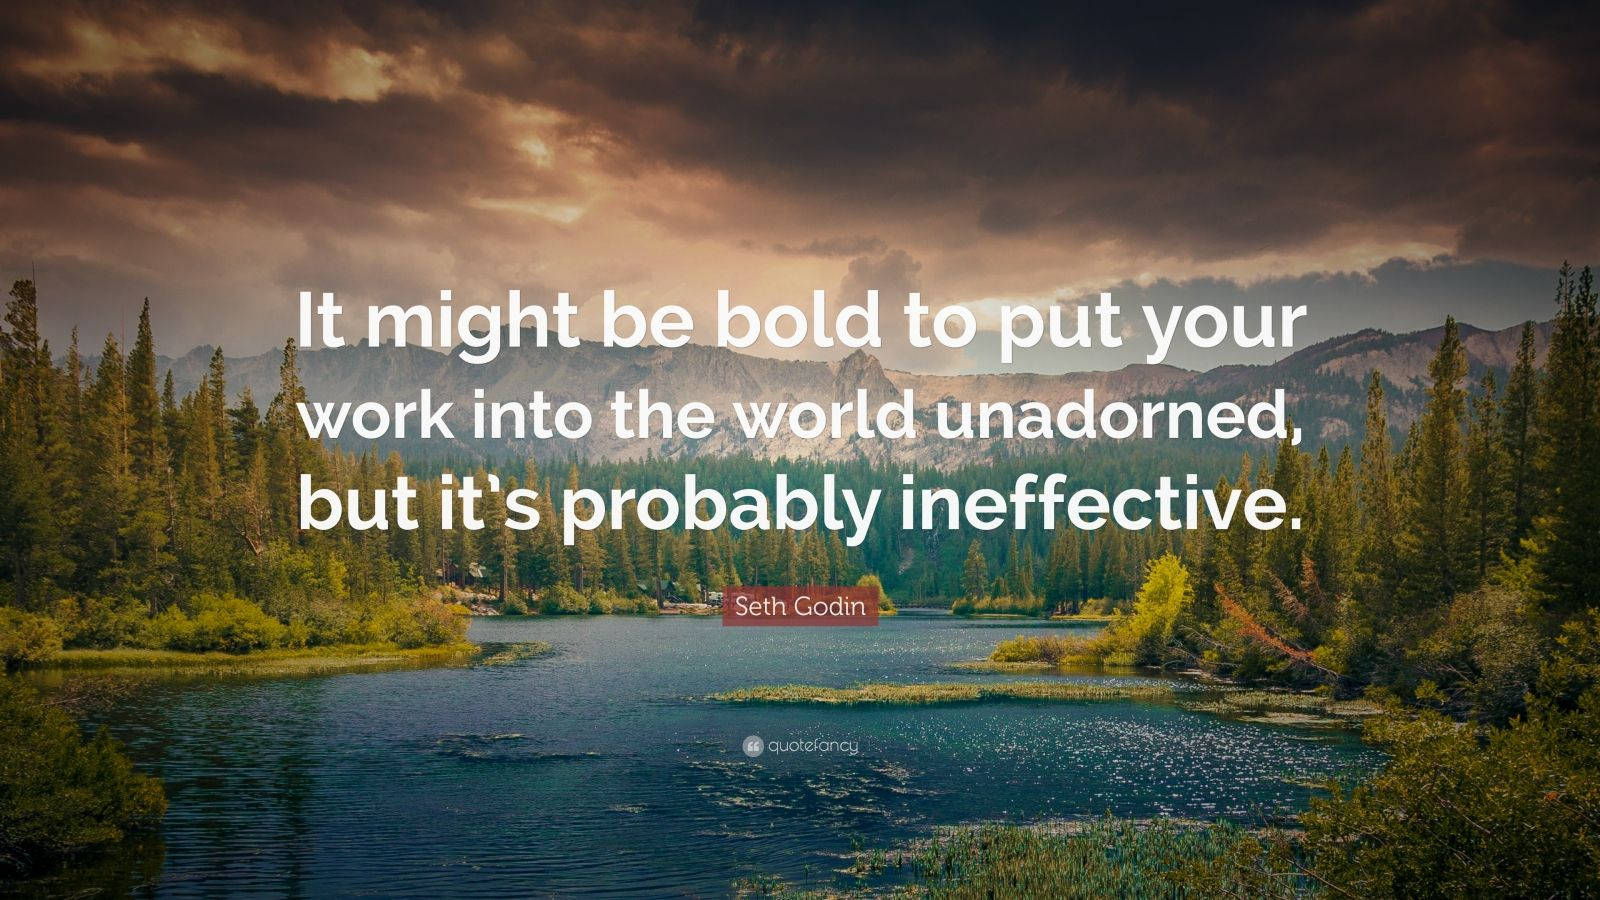 """Seth Godin Quote: """"It might be bold to put your work into the world unadorned, but it's probably ineffective."""""""